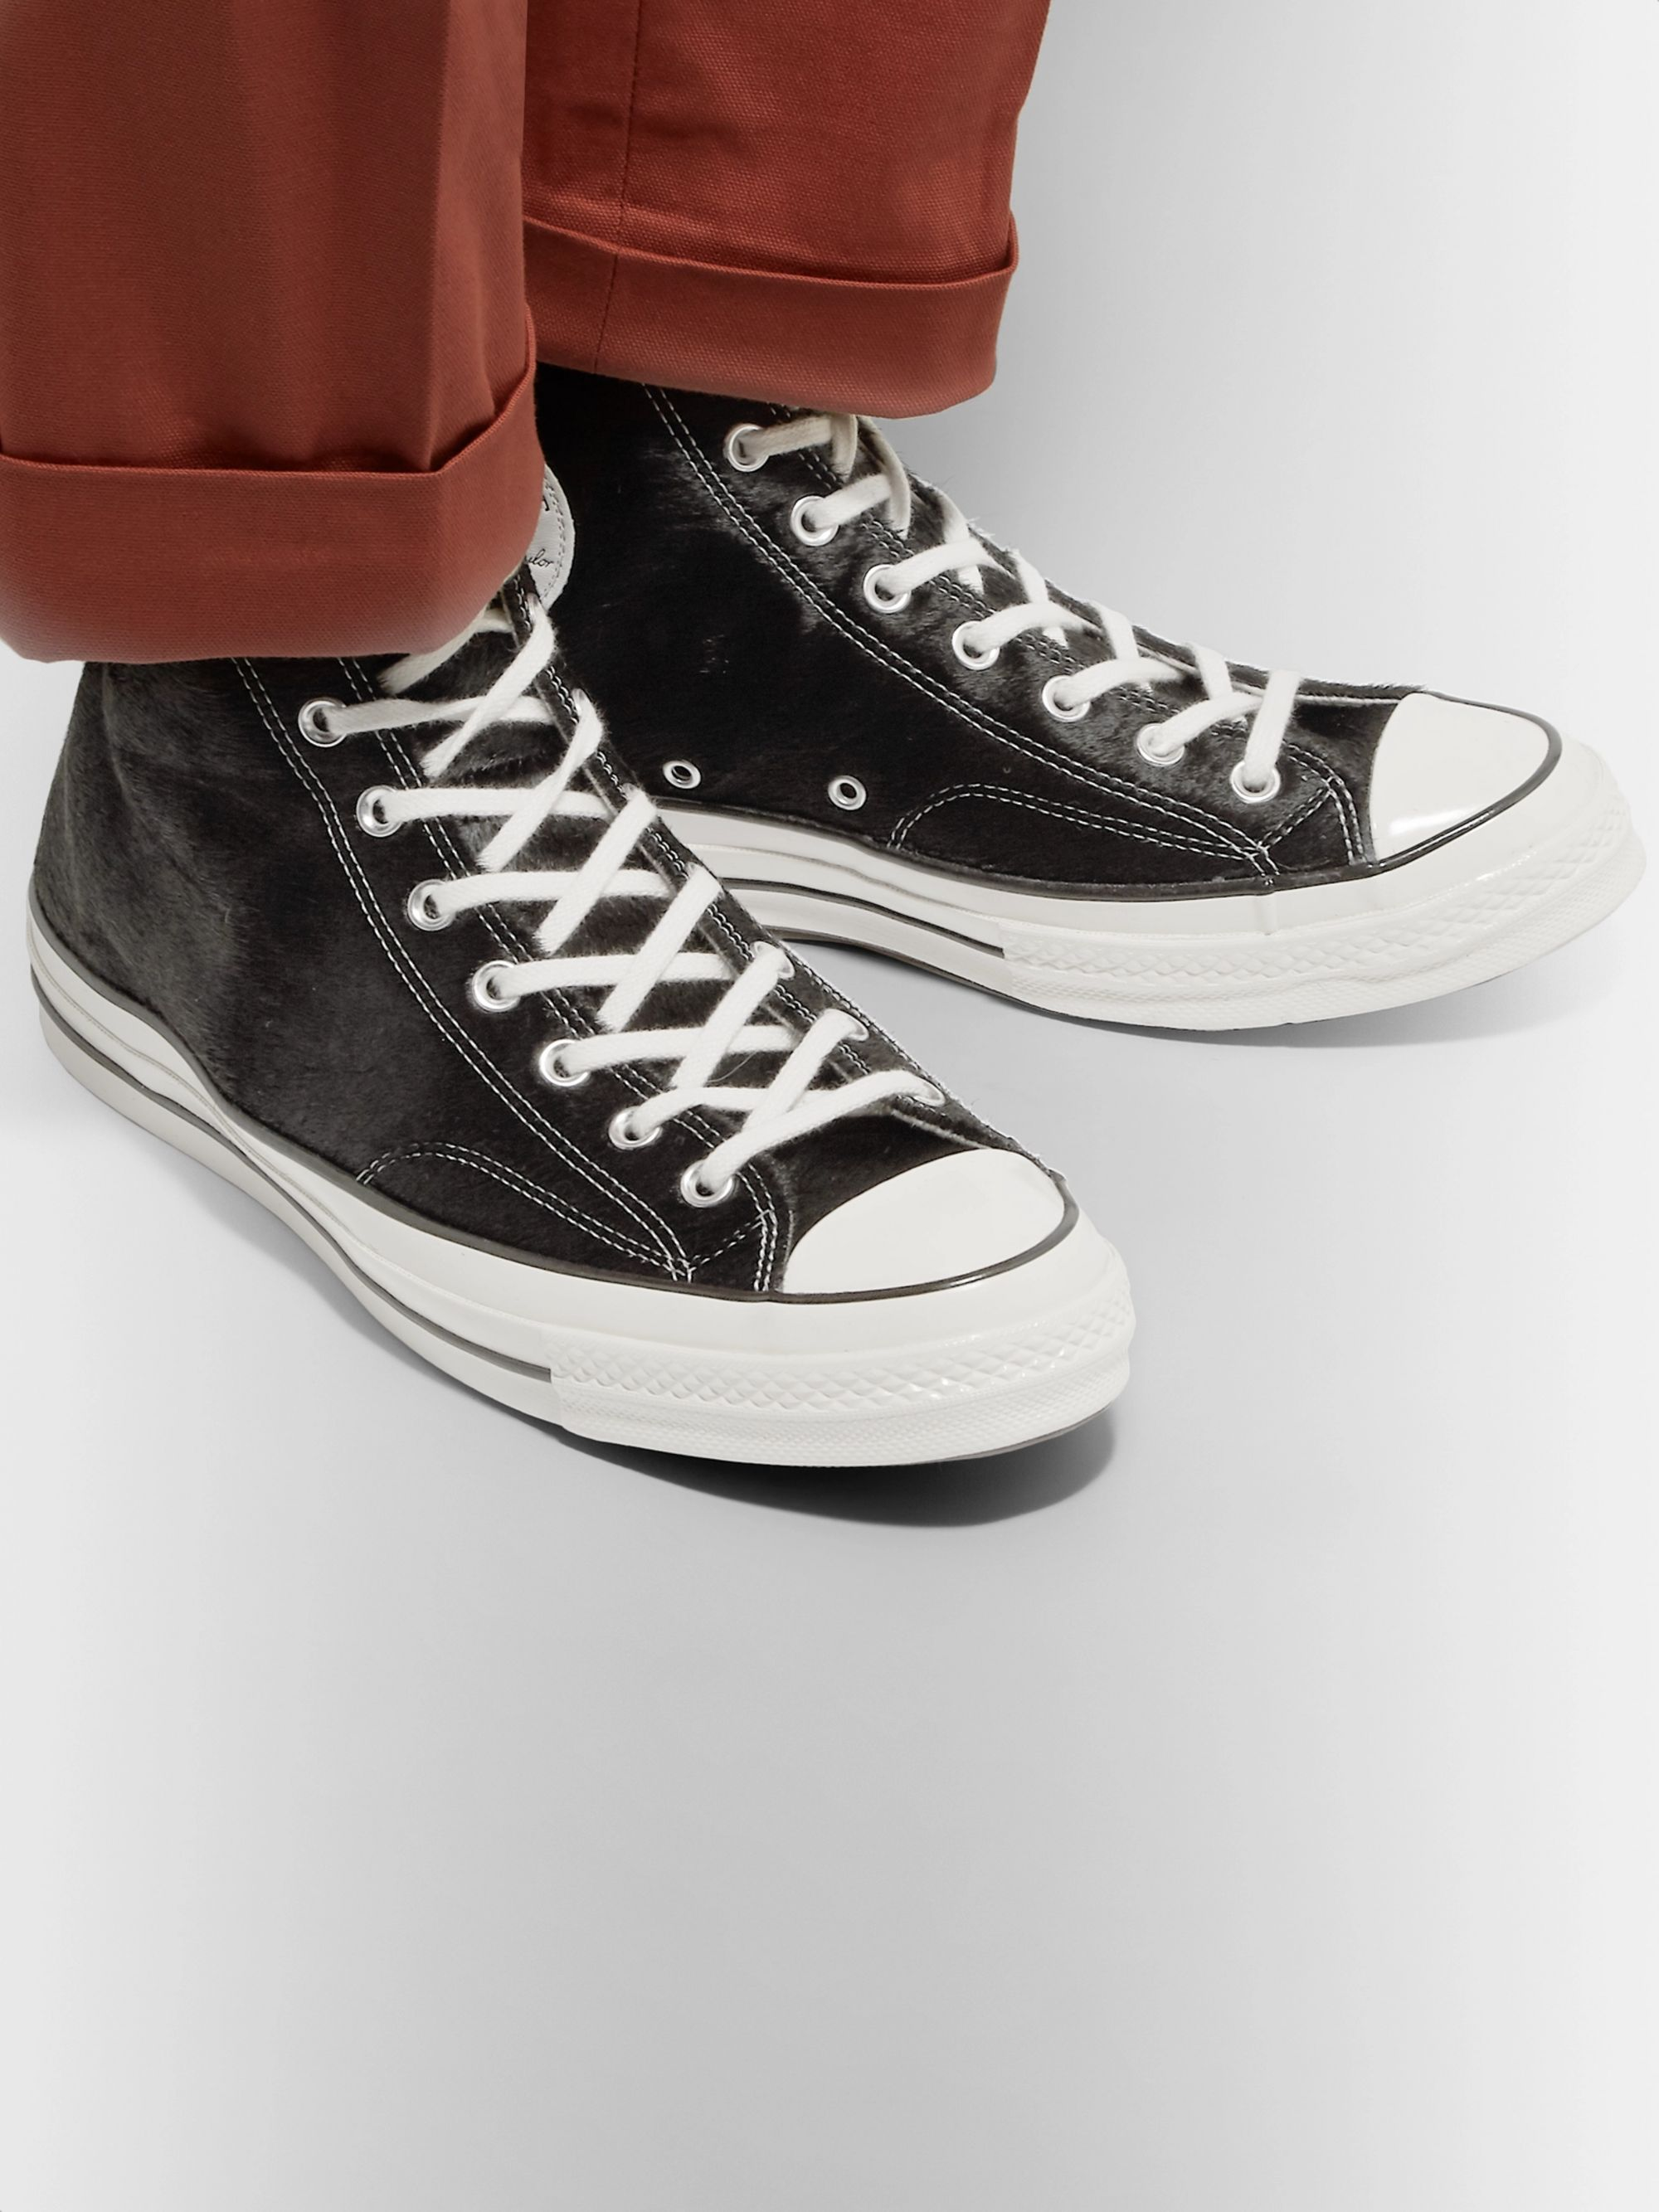 Converse 1970s Chuck Taylor All Star Calf Hair High-Top Sneakers